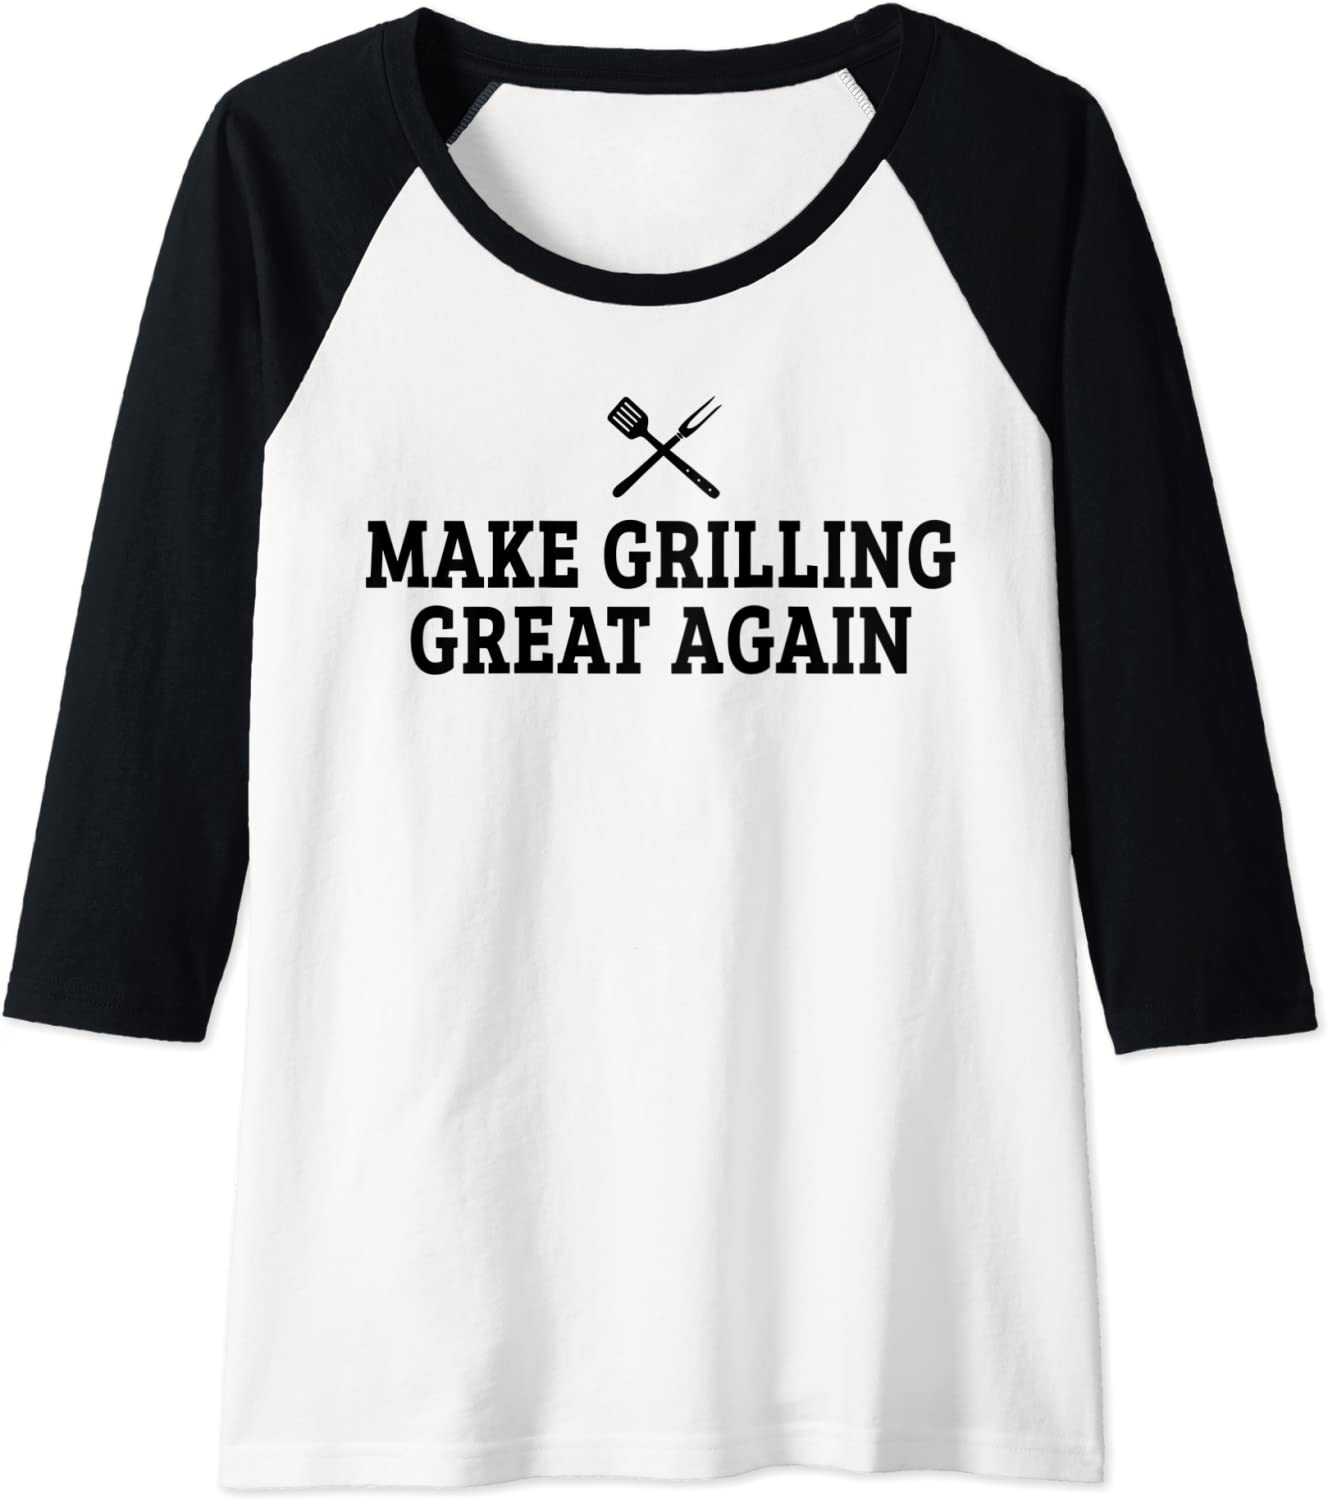 Funny BBQ Grilling T Shirt Meat Smoker Lover Fathers Day Grill Gift Idea for Men